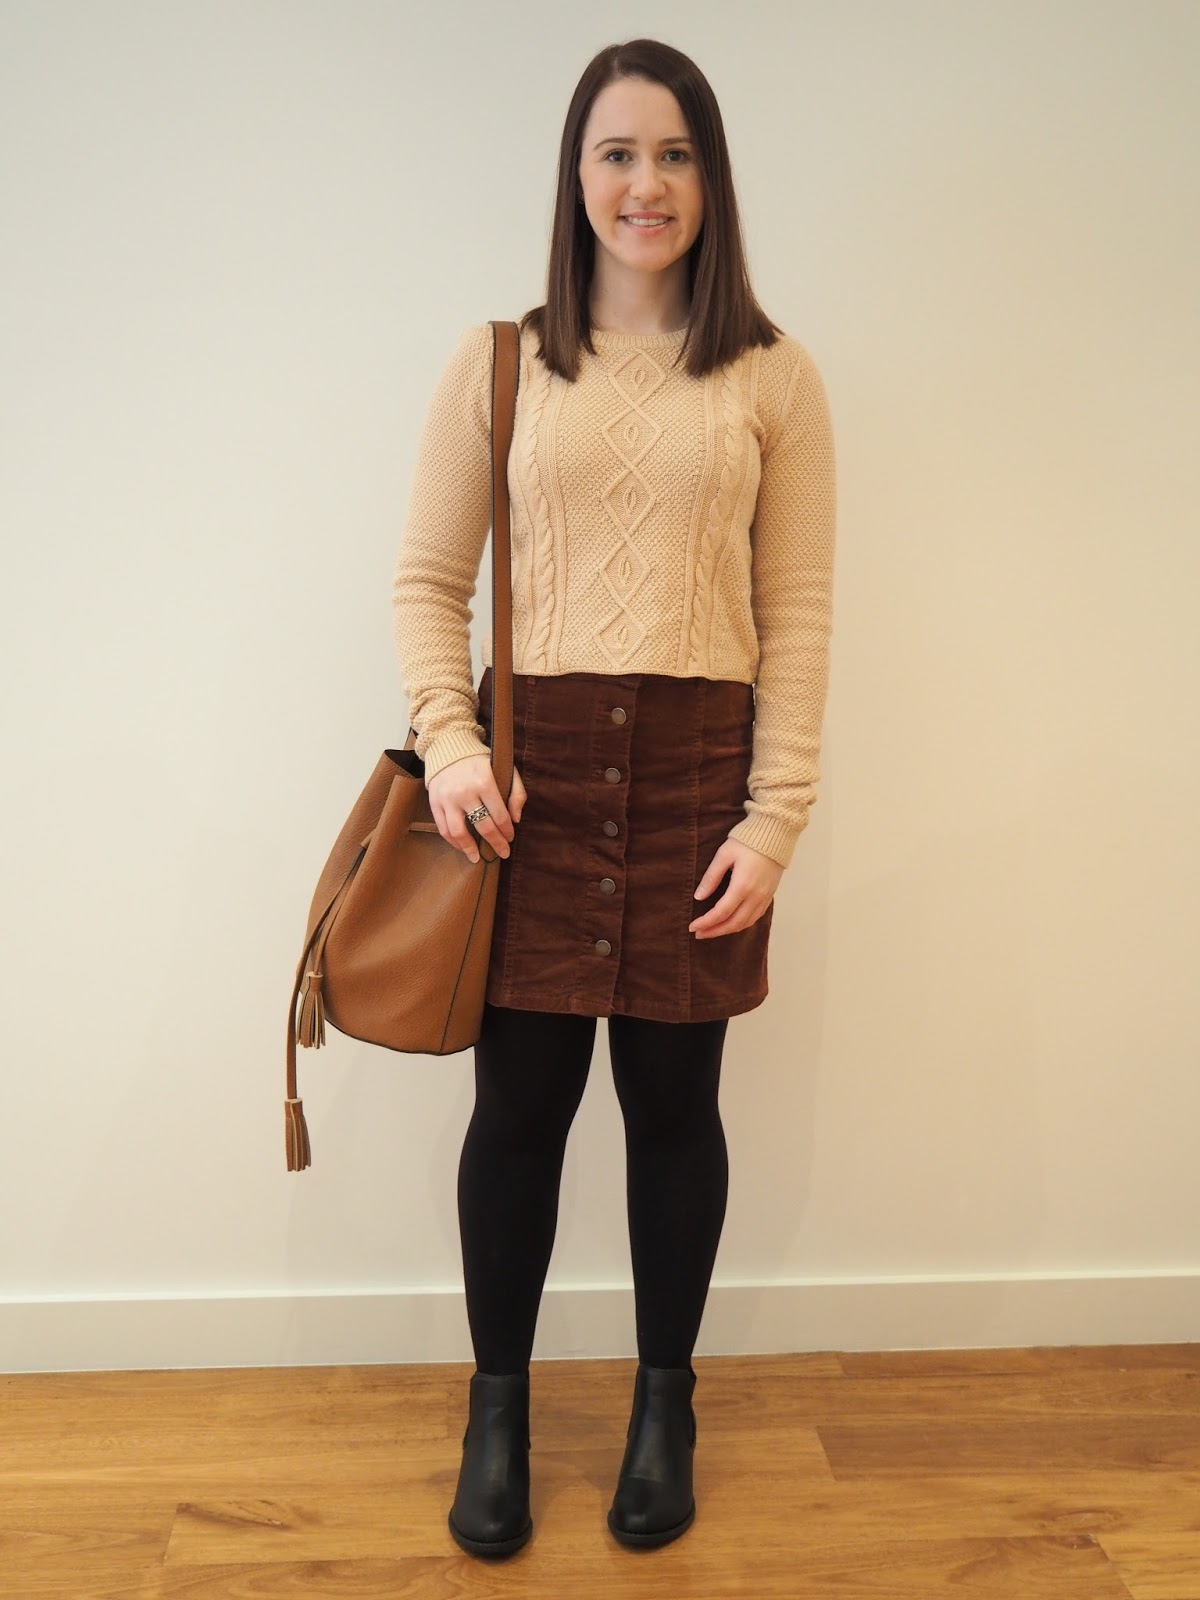 winter outfit, fall outfit, camel cropped knit, walnut cord skirt, ankle boots, ankle chelsea boots, tan bucket bag, work outfit